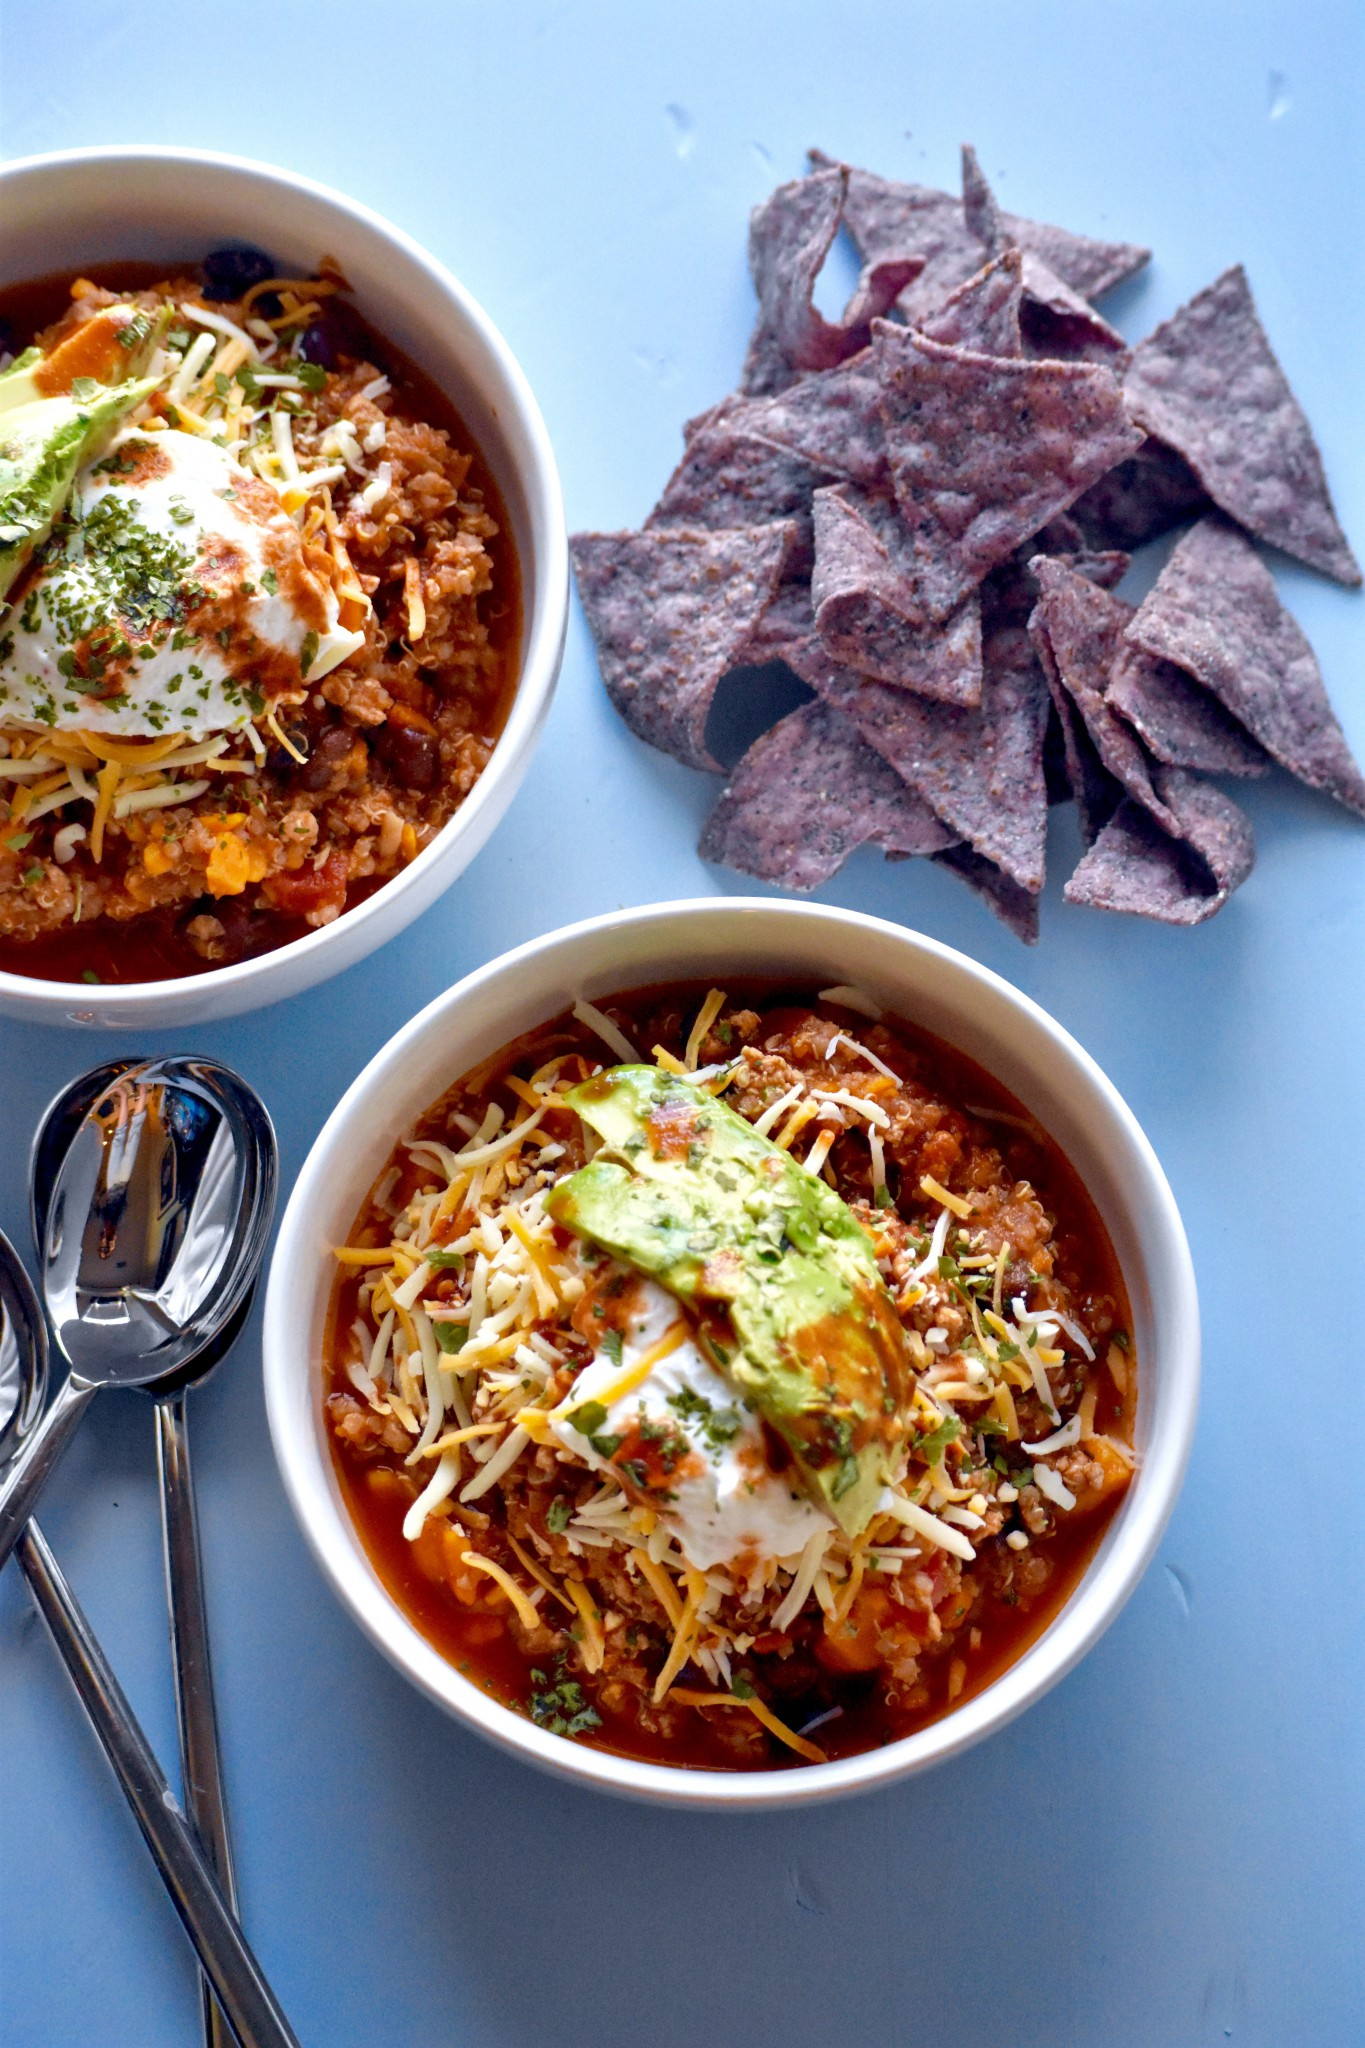 HEARTY BLACK BEAN, SWEET POTATO, QUINOA AND TURKEY CHILI